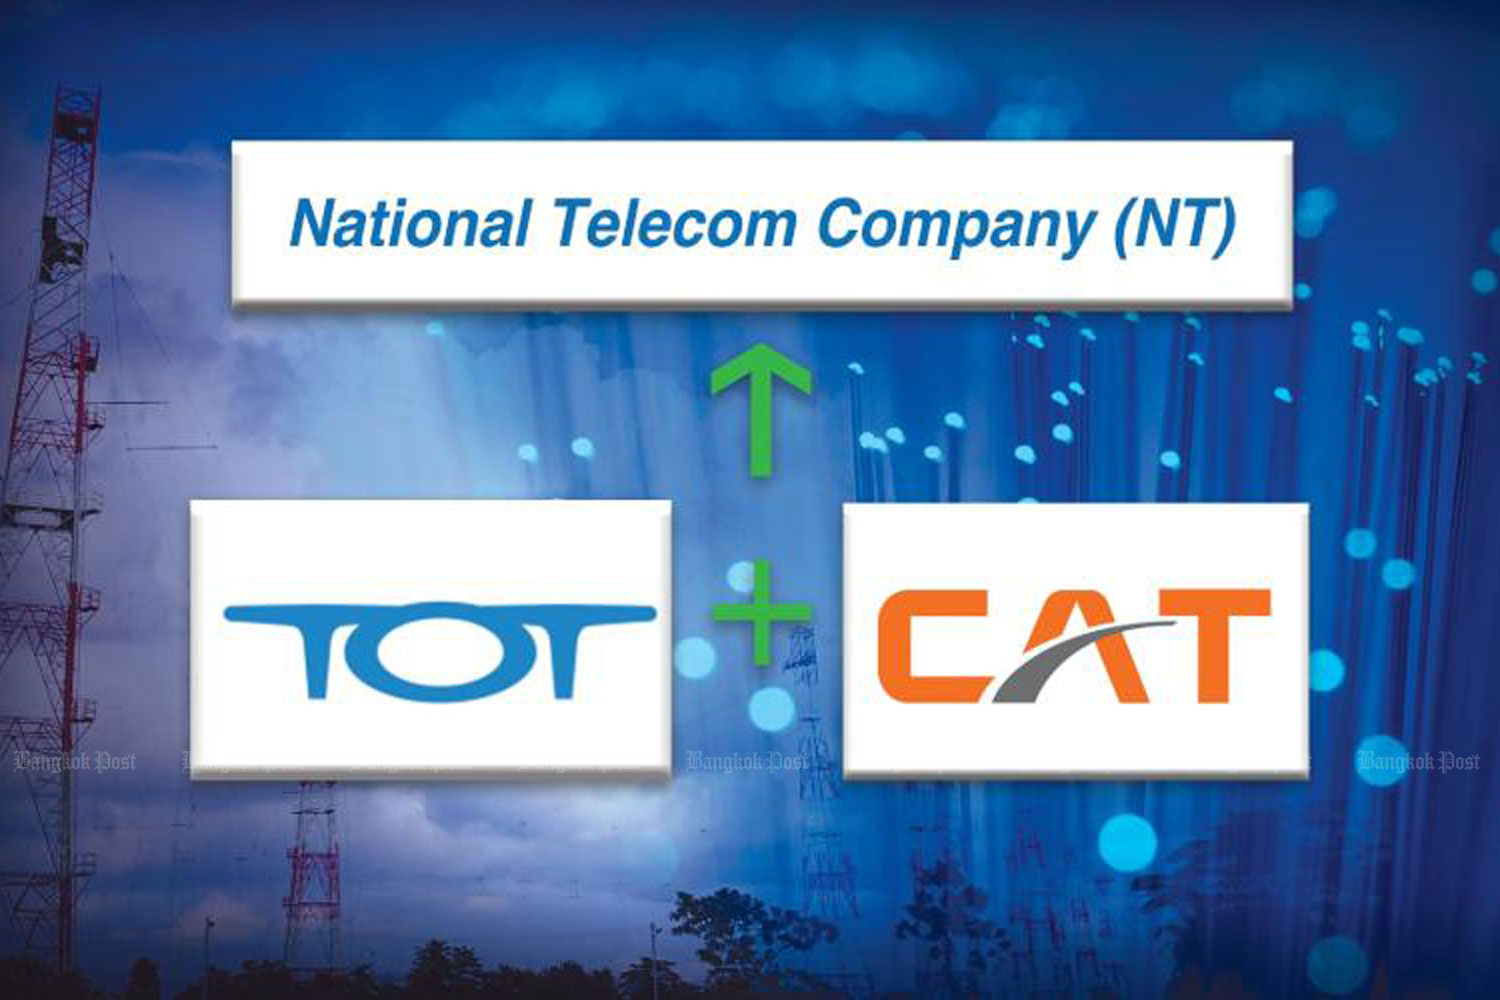 CAT and TOT will be merged into a single entity, National Telecom Co, in November.